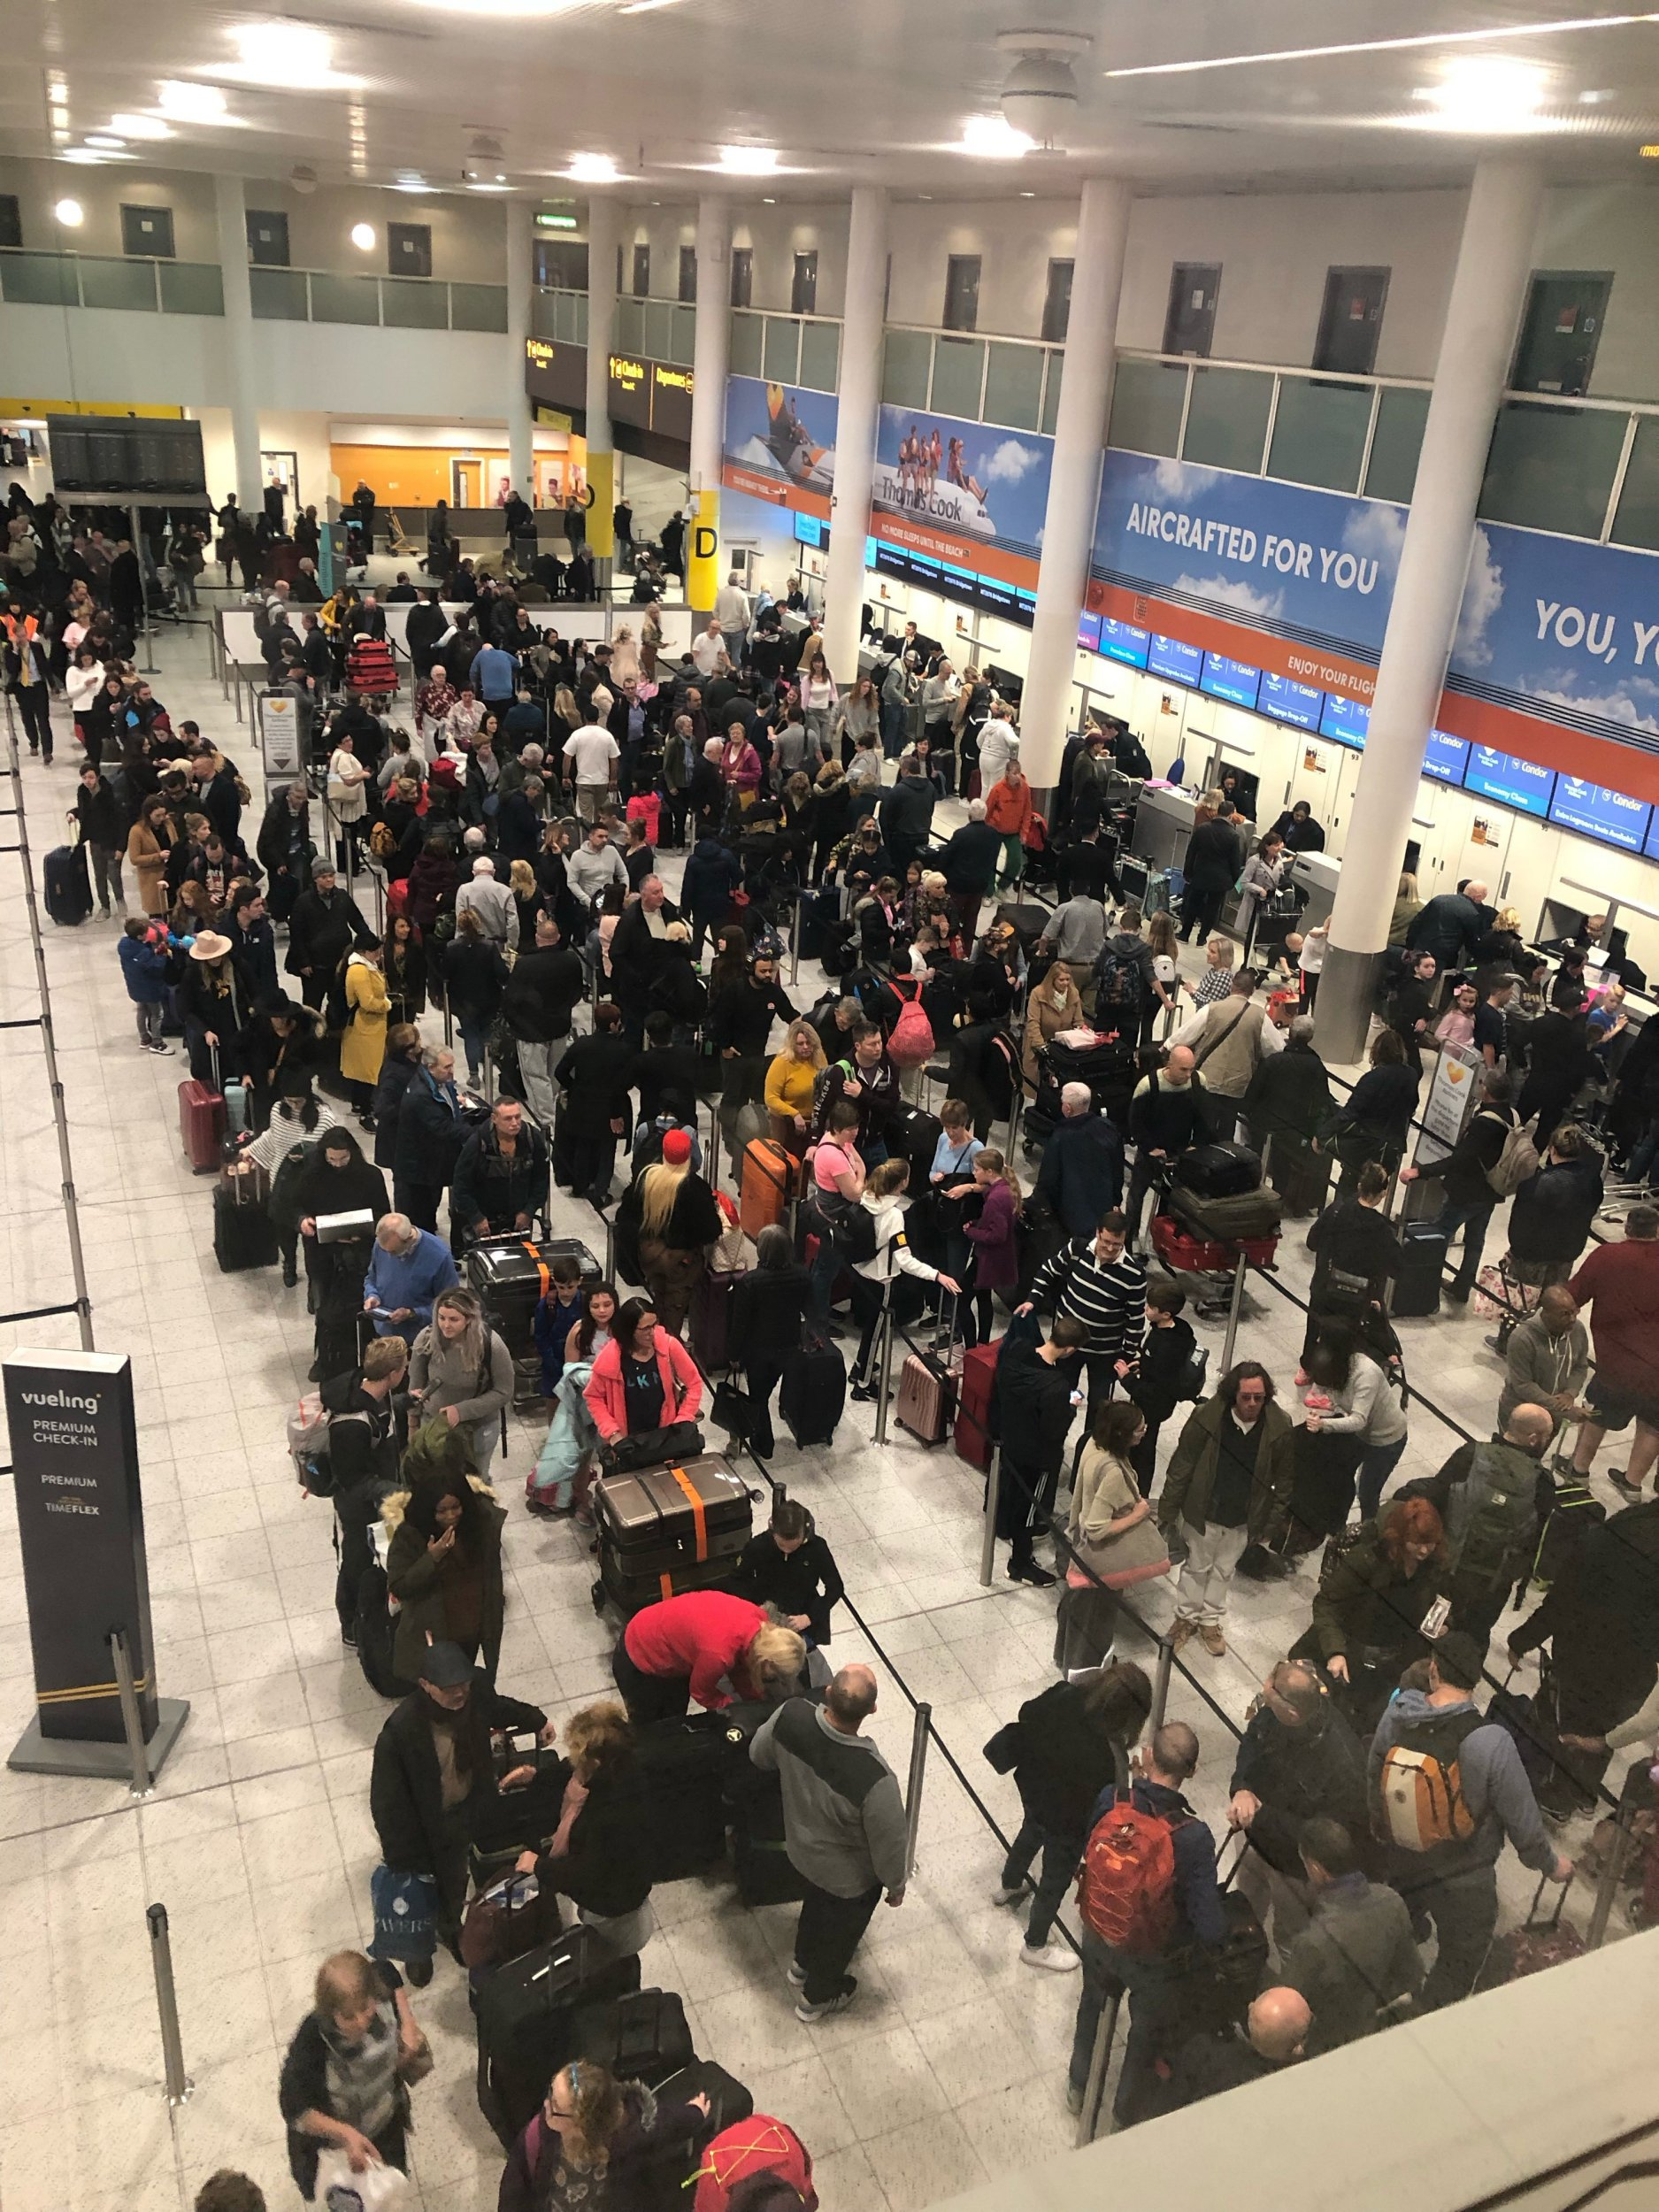 """The drone attack that brought Gatwick to a standstill before Christmas is believed to have been an """"inside job"""", according to Whitehall sources Queues of passengers in the check in area at Gatwick Airport this morning, as the airport remains closed after drones were spotted over the airfield last night and this morning."""